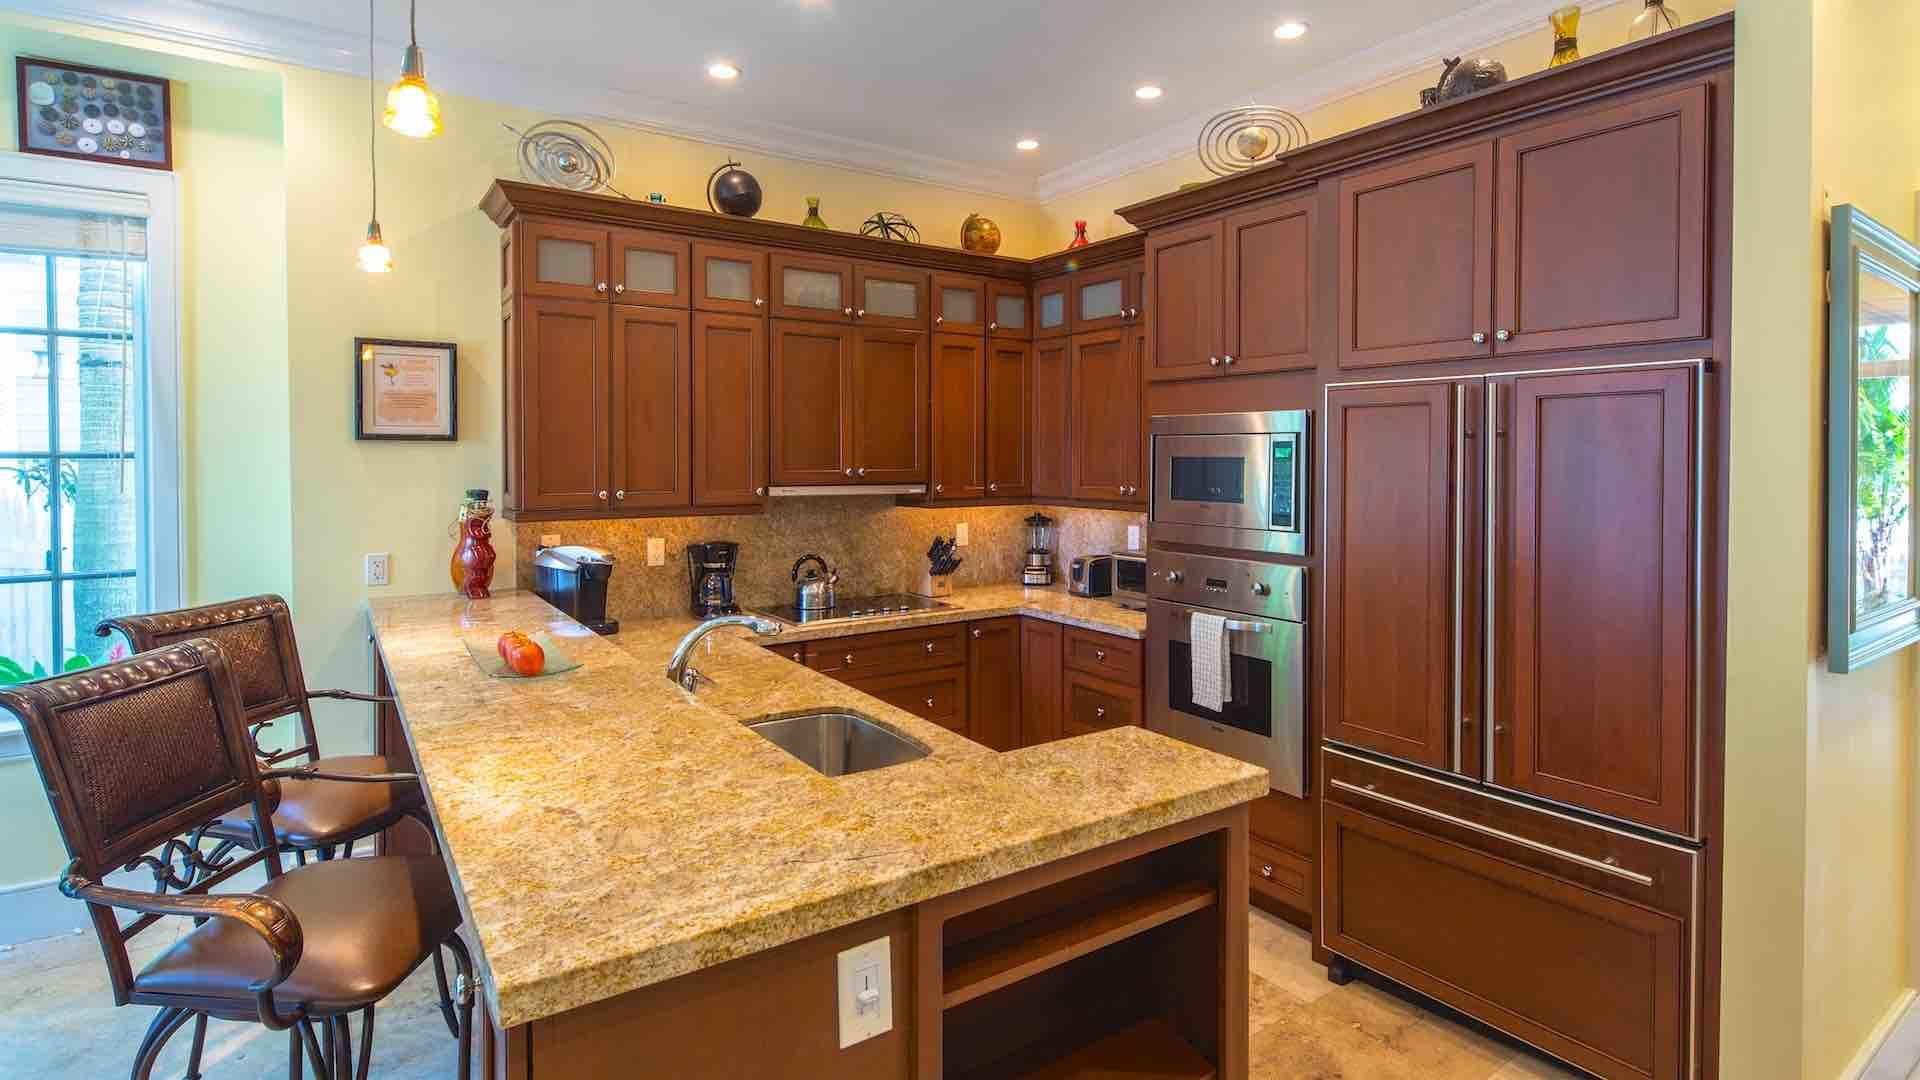 The kitchens have everything you'll need for preparing a meal for a large group...